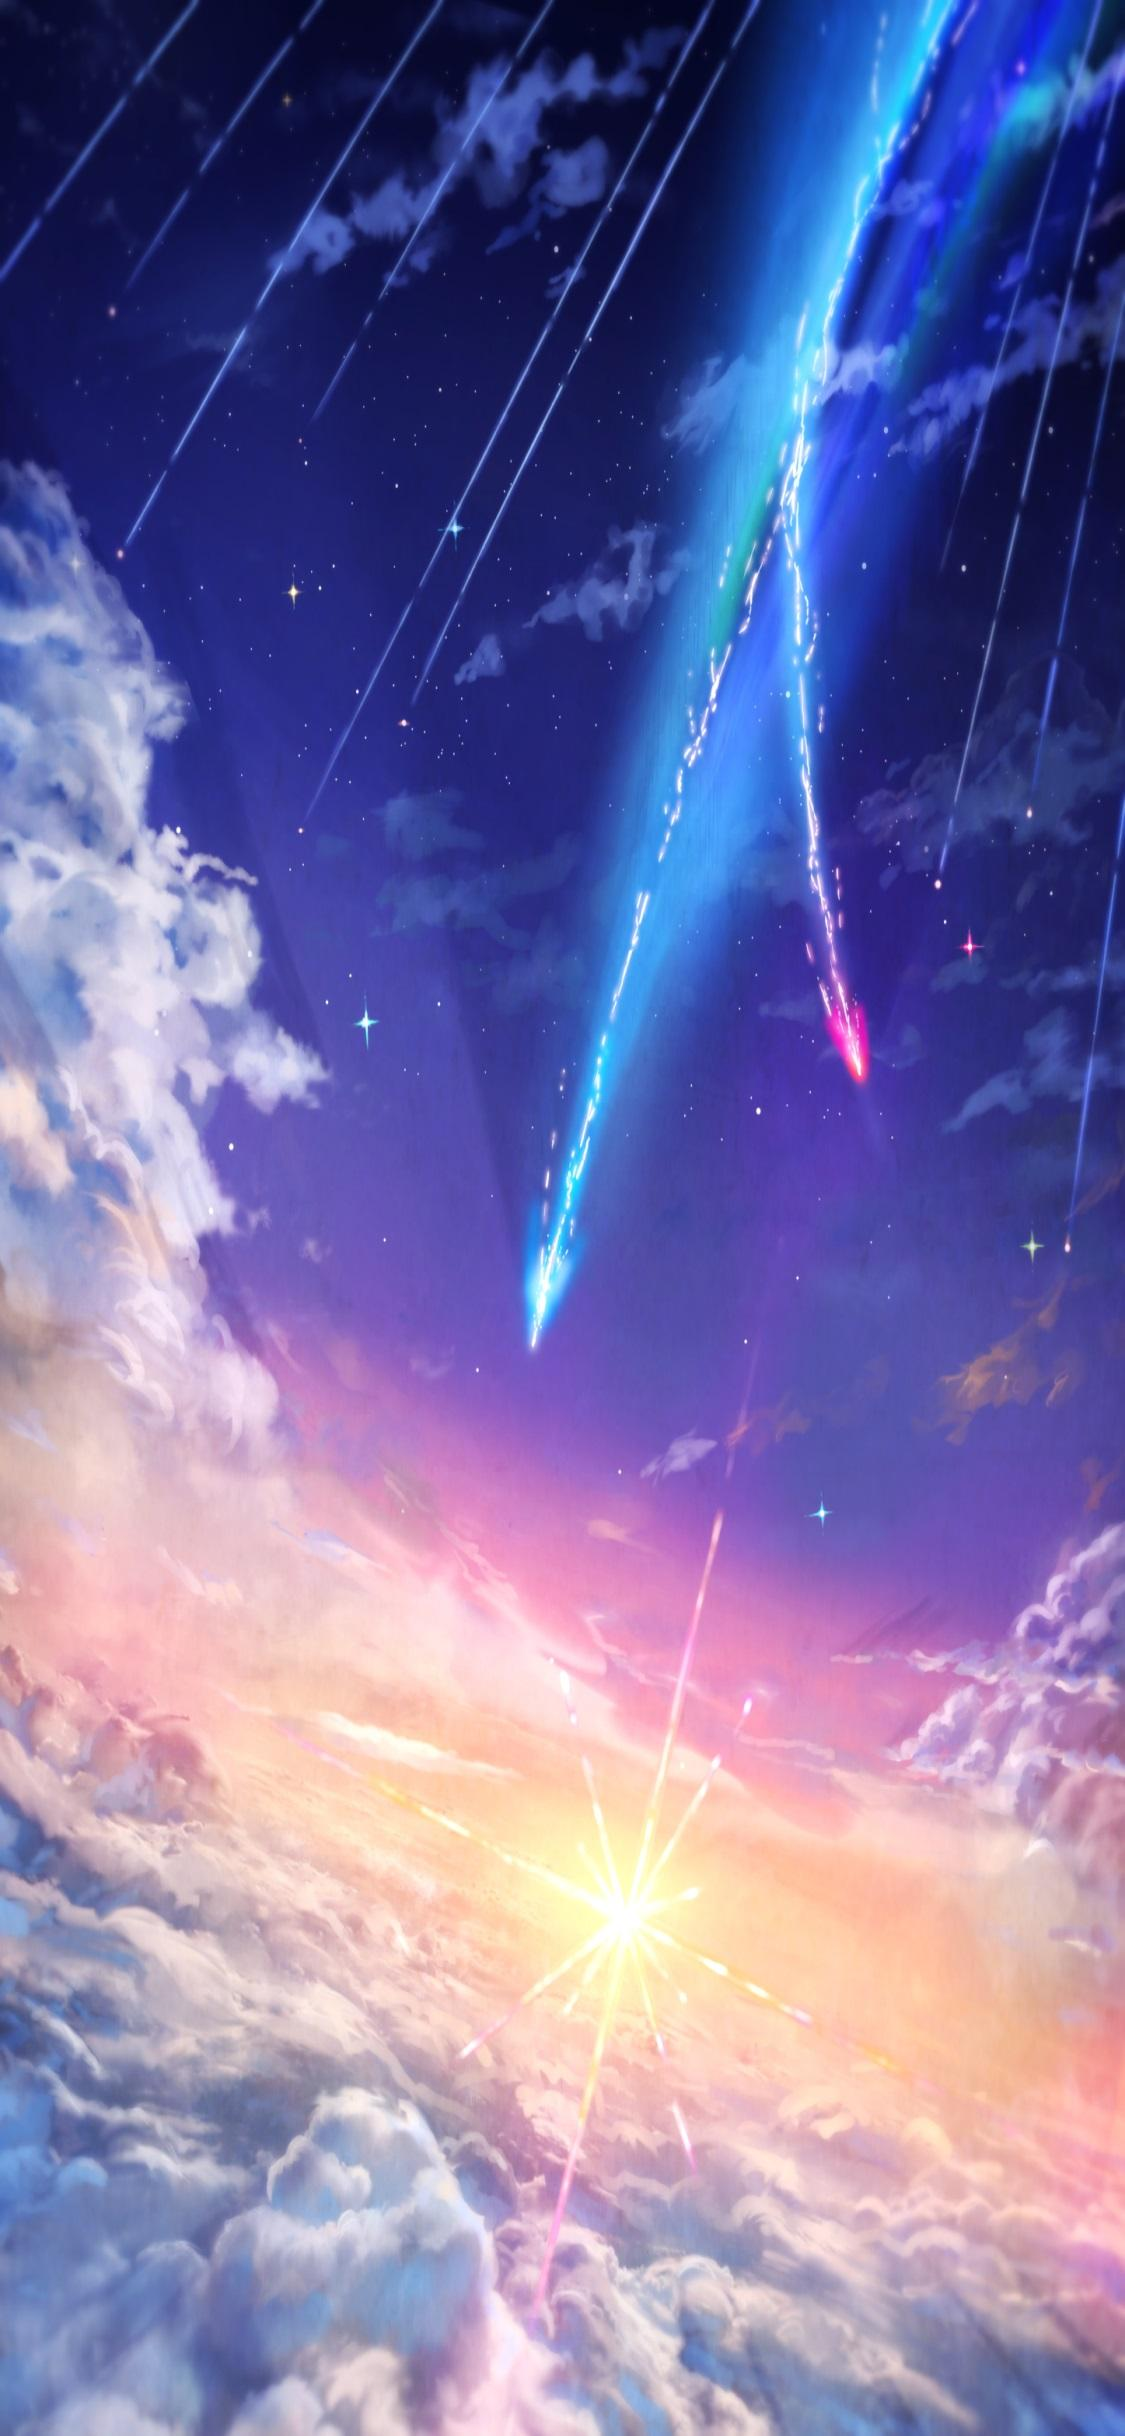 Kimi No Nawa Iphone Wallpapers Wallpaper Cave